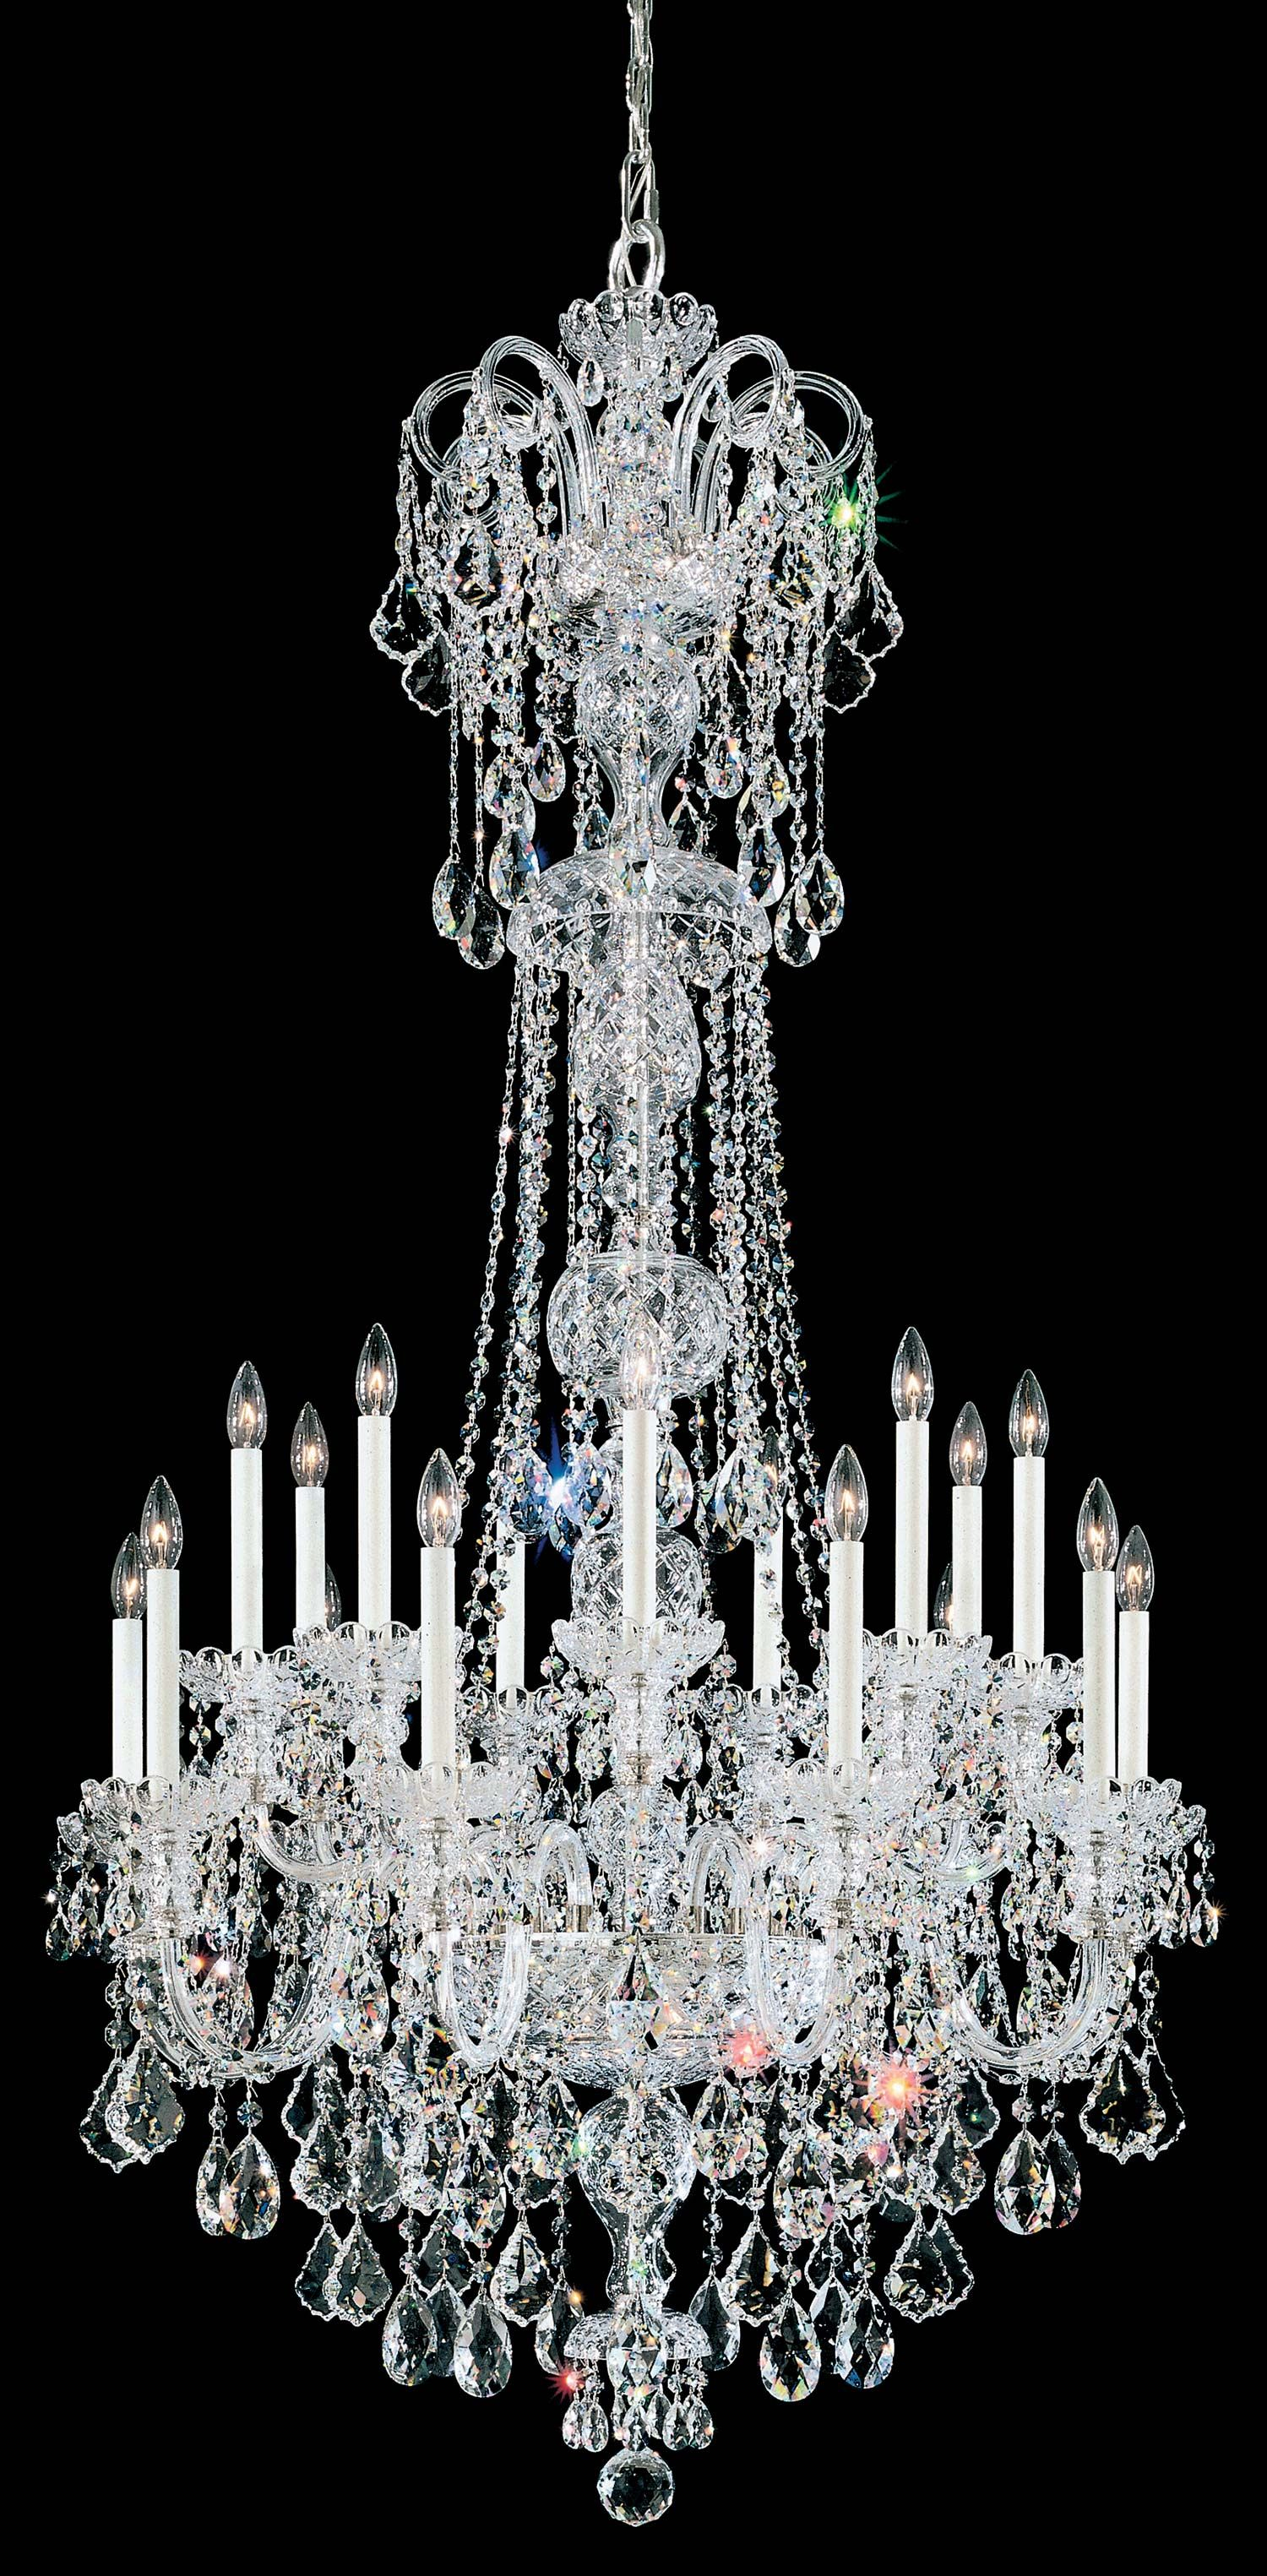 Embrace your life luz pinterest chandeliers white light crystals arubaitofo Gallery